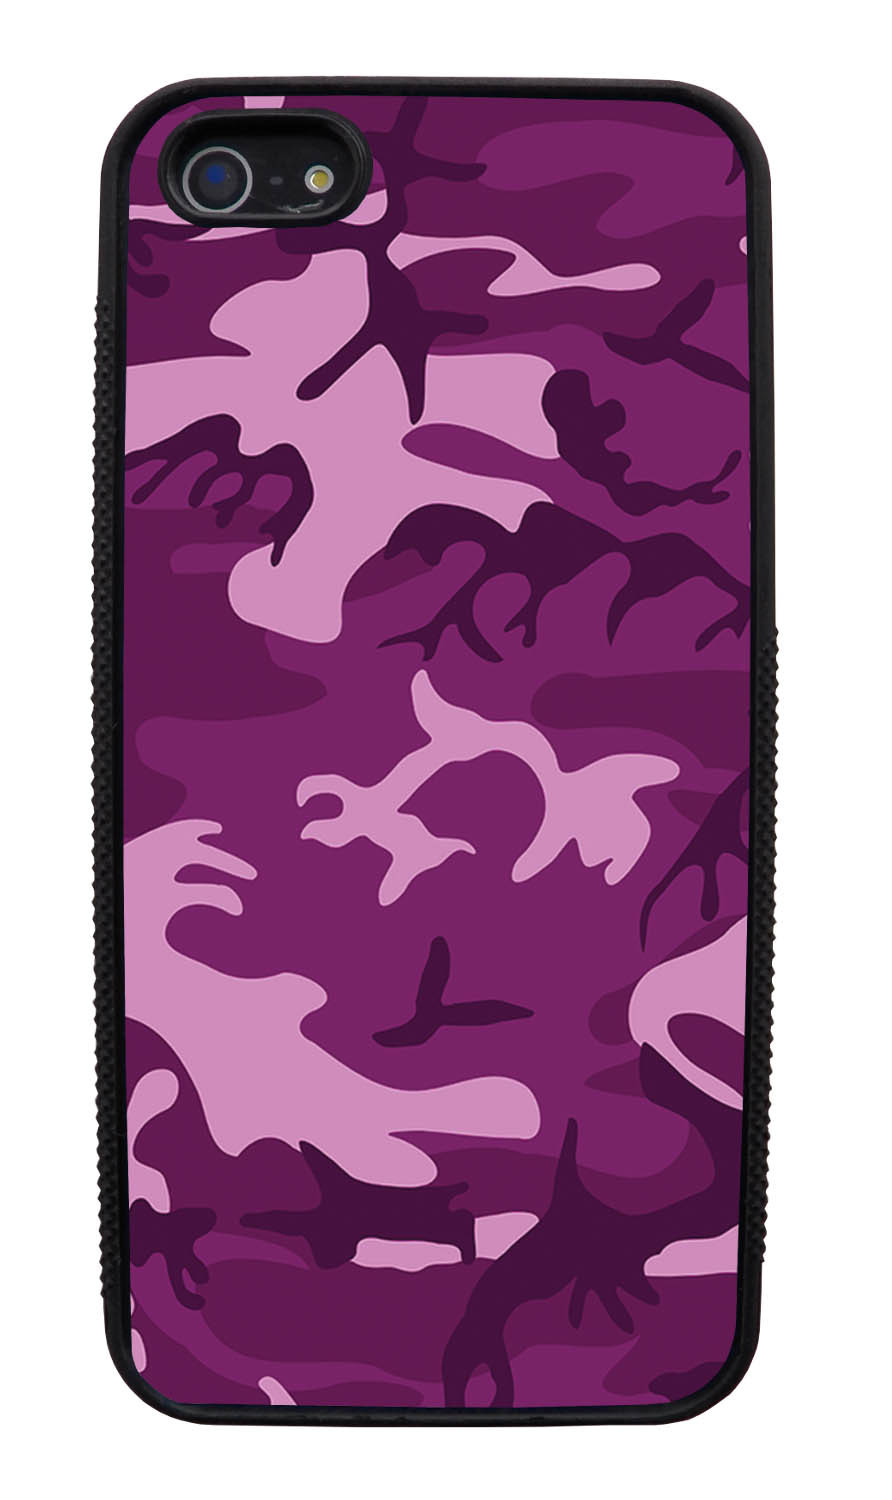 Apple iPhone 5 / 5S Camo Case - Purple - Woodland - Black Slim Rubber Case